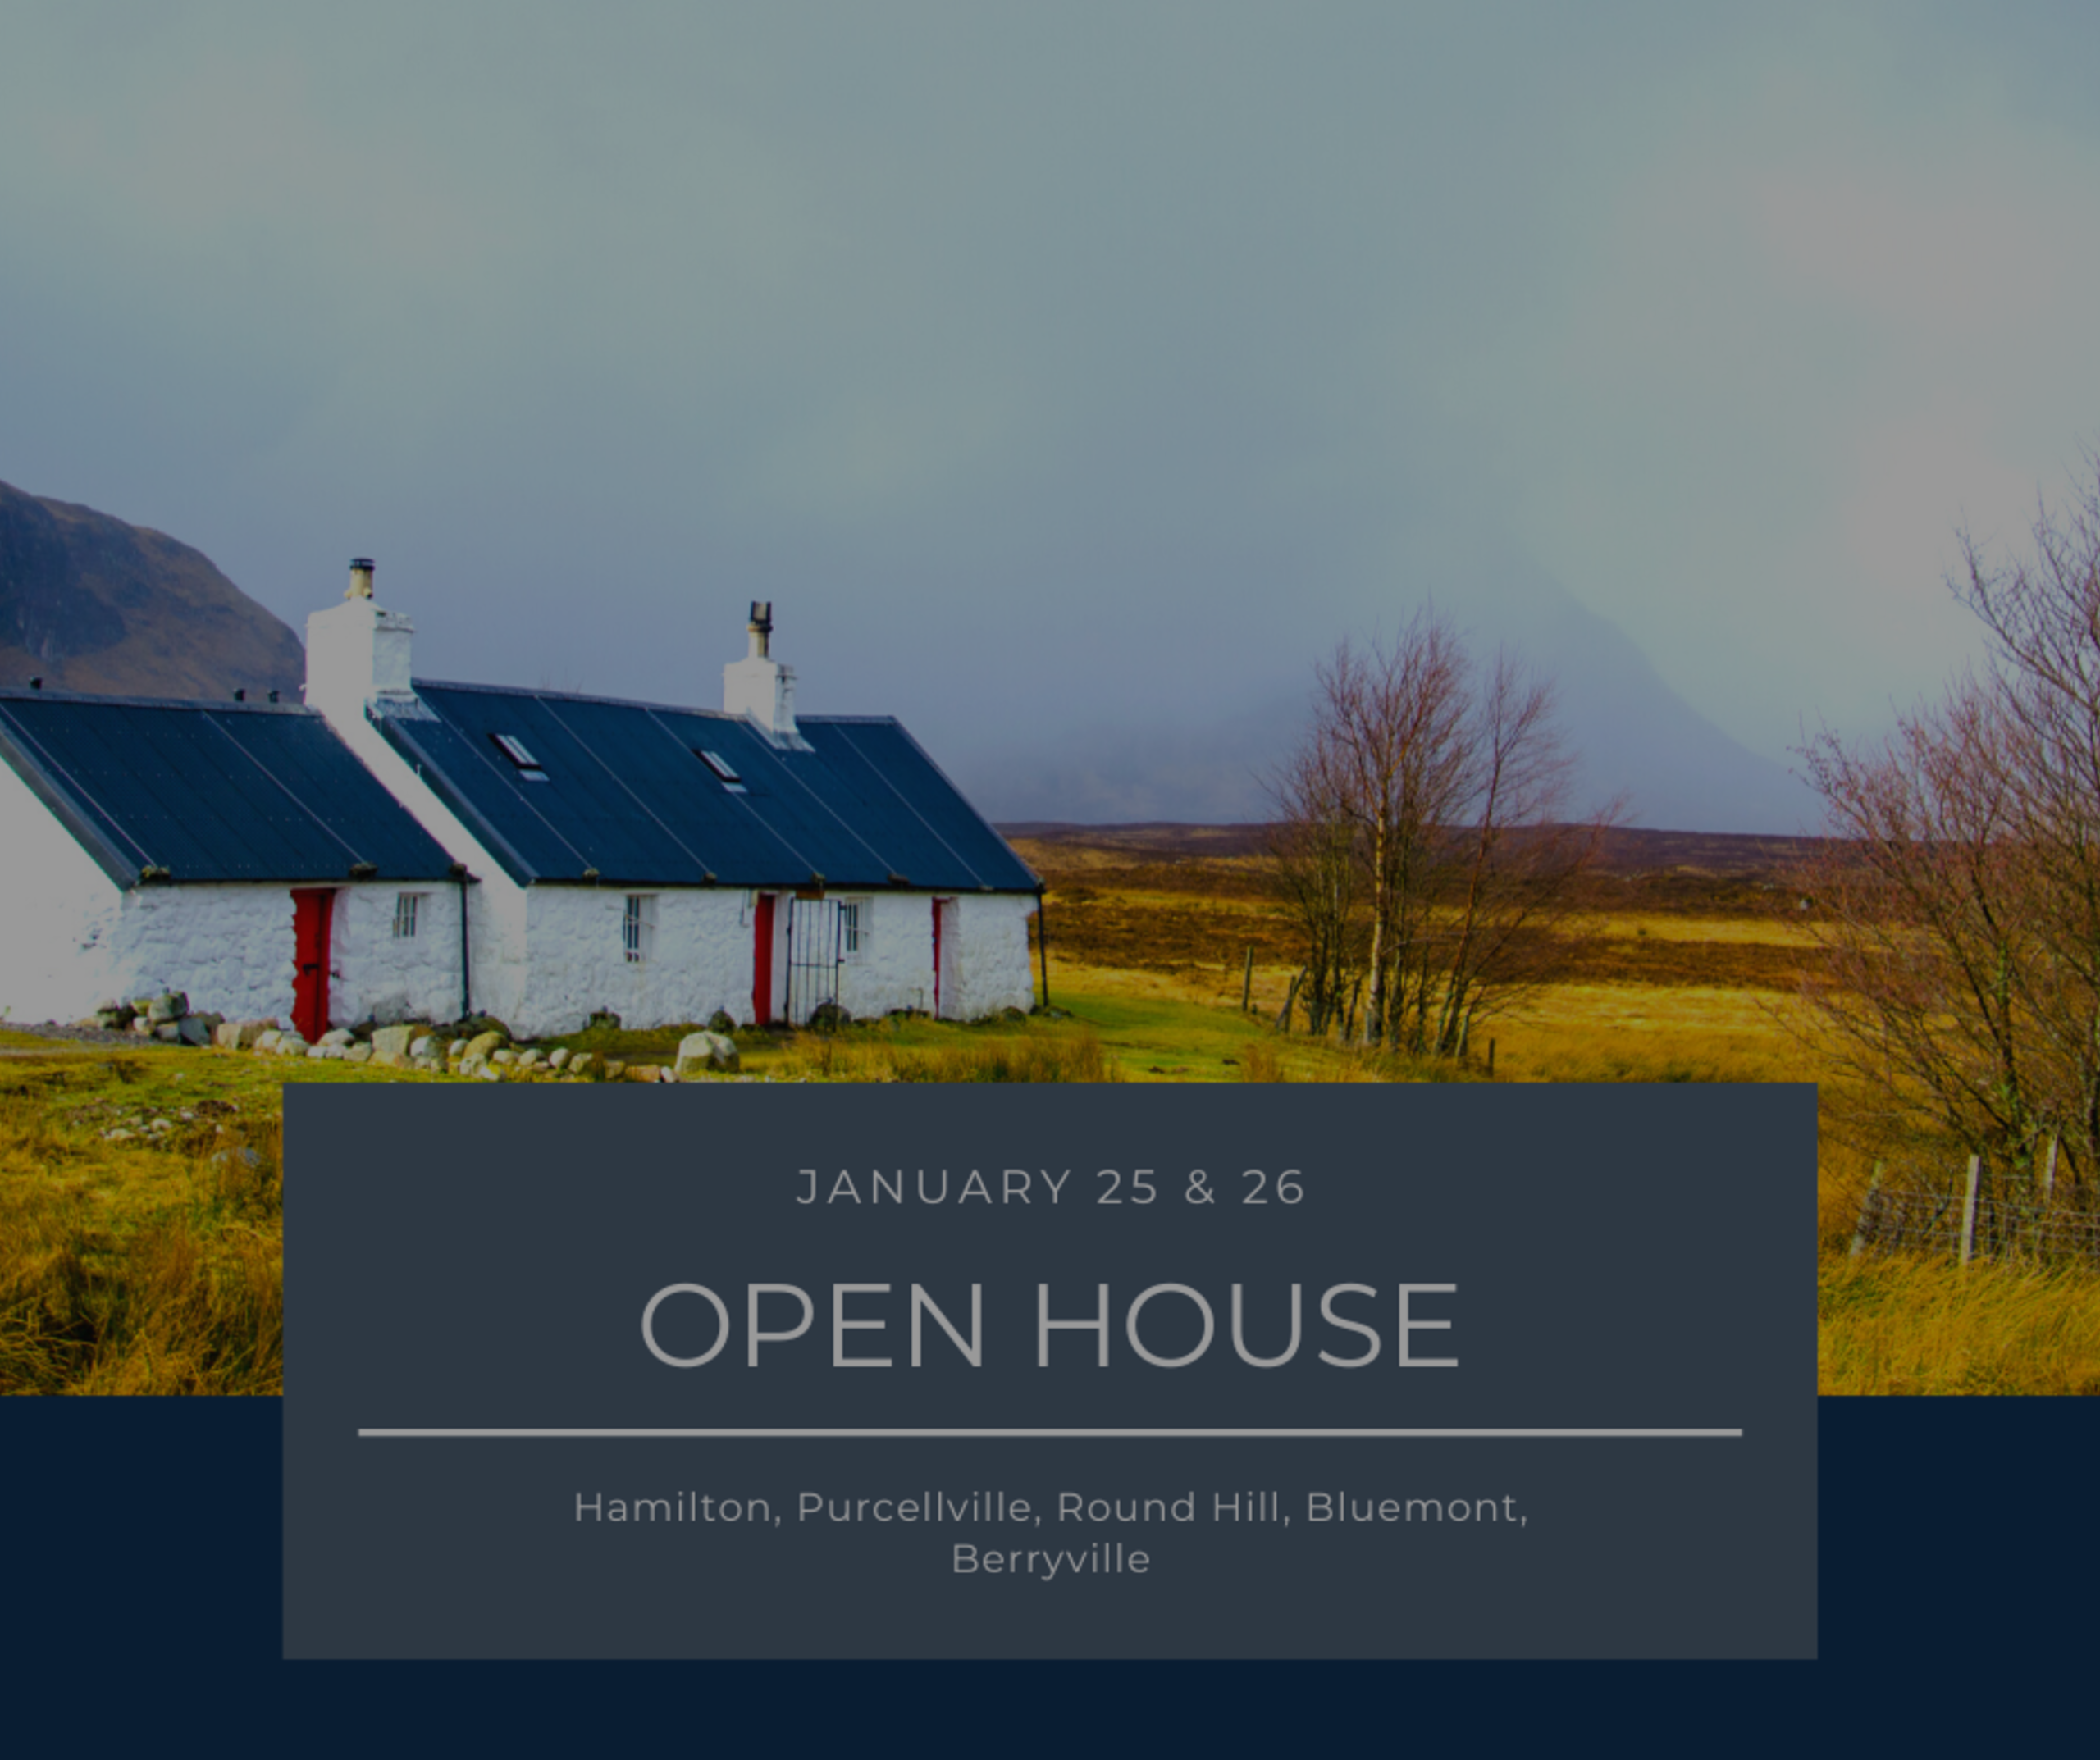 Open House List 1/25/20 – 1/26/20